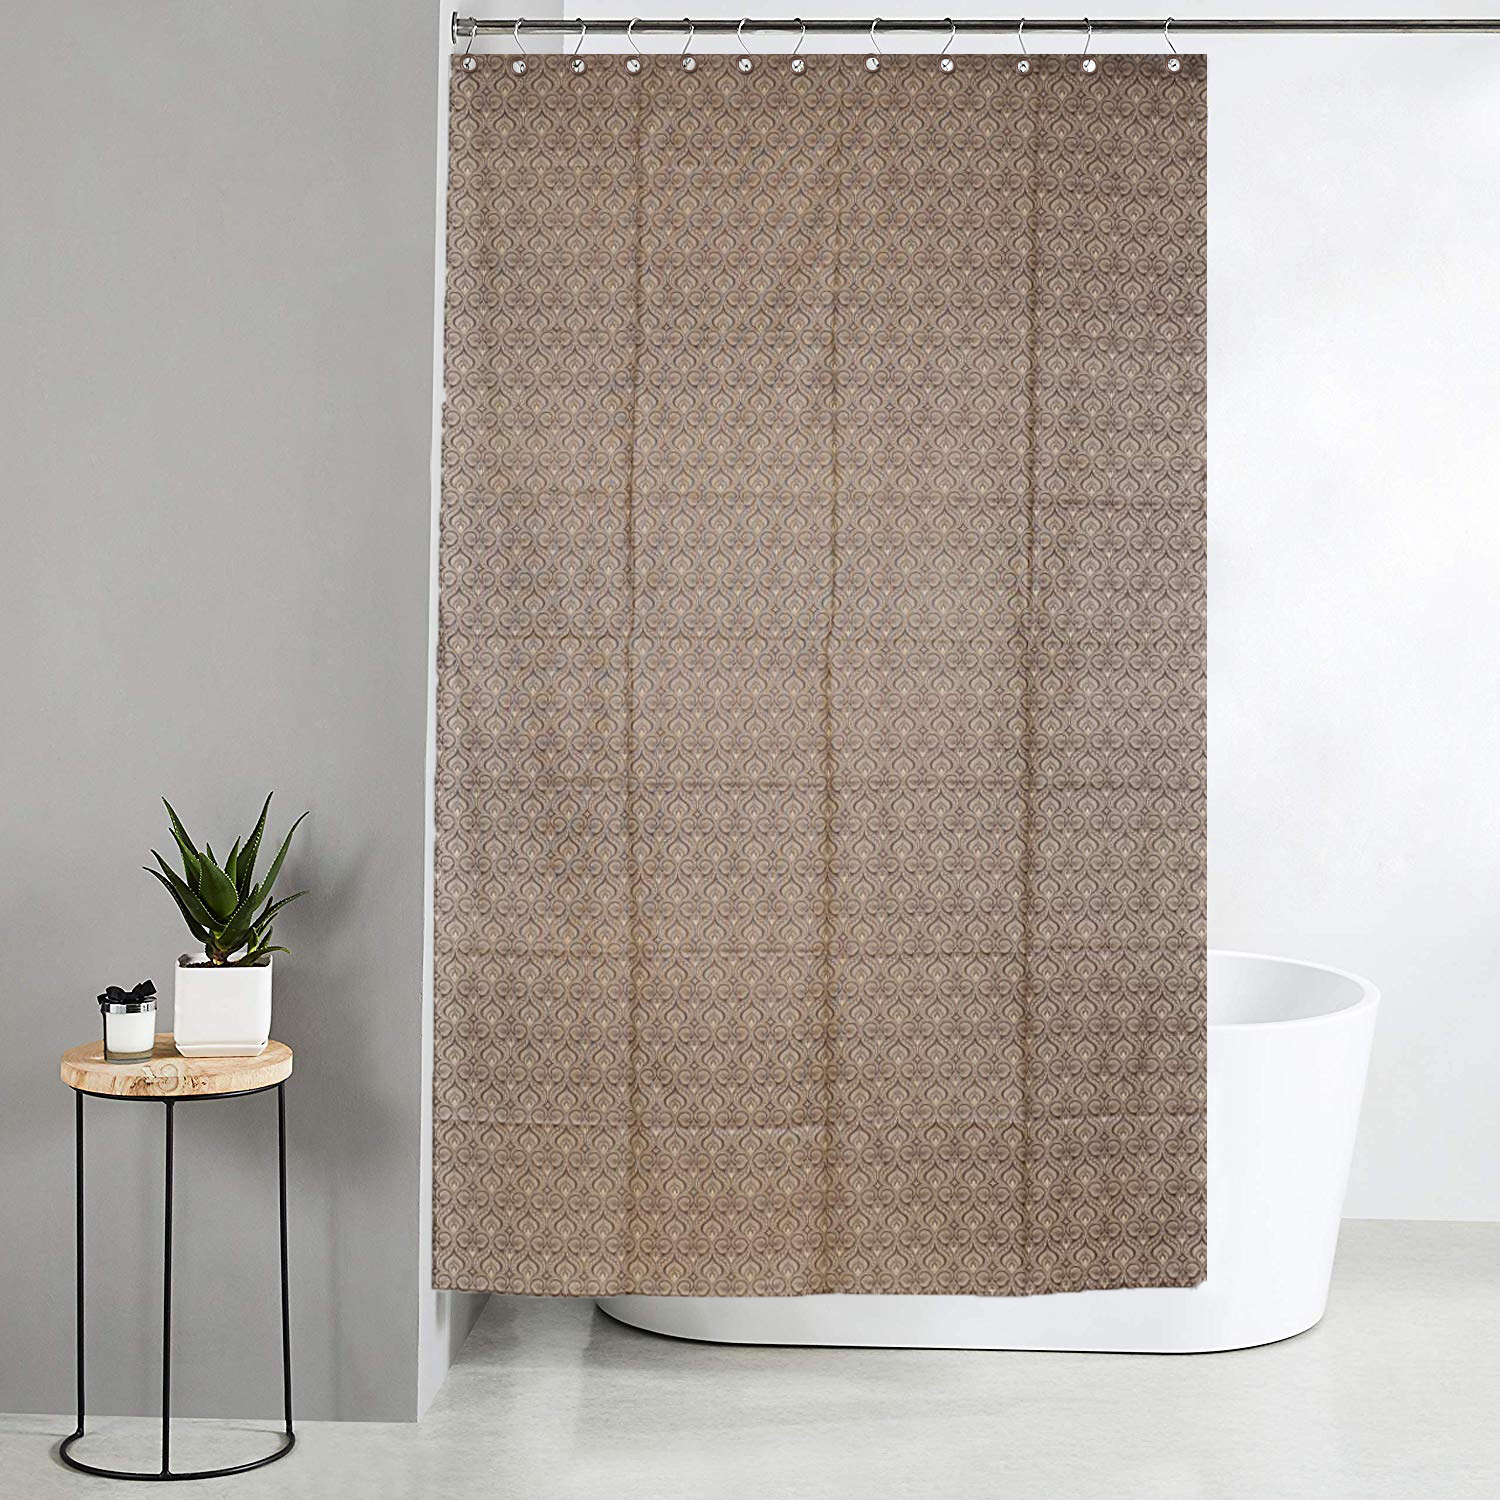 Kuber Industries Leaf Design Waterproof PVC Shower Curtain with 8 Hooks 54 inch x 84 inch (Coffee)